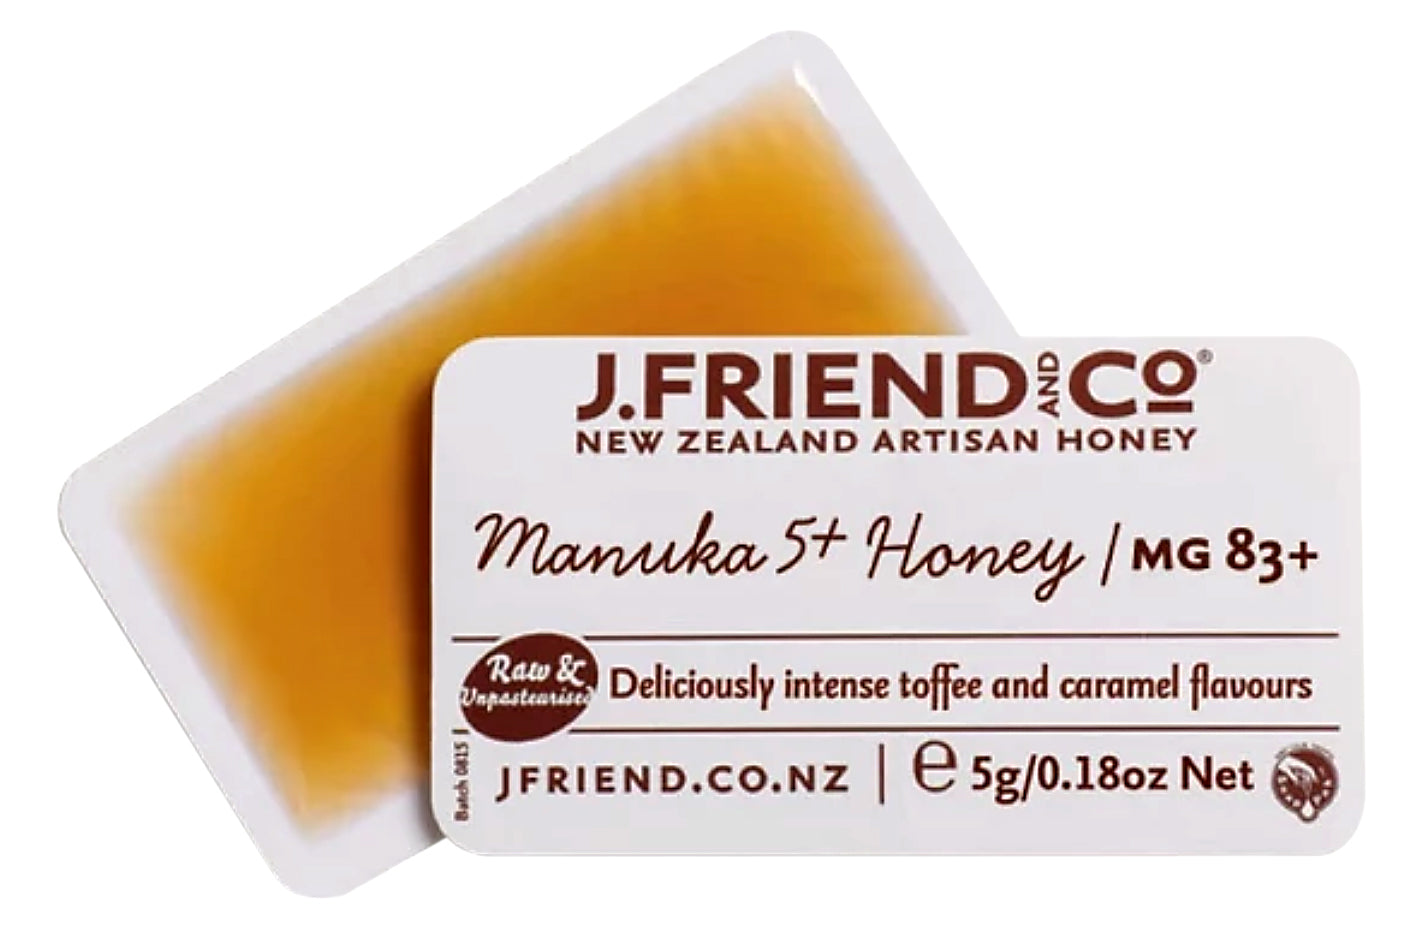 Manuka 5+ / MG 83+ Honey 5g - Manuka Honey | J Friend & Co